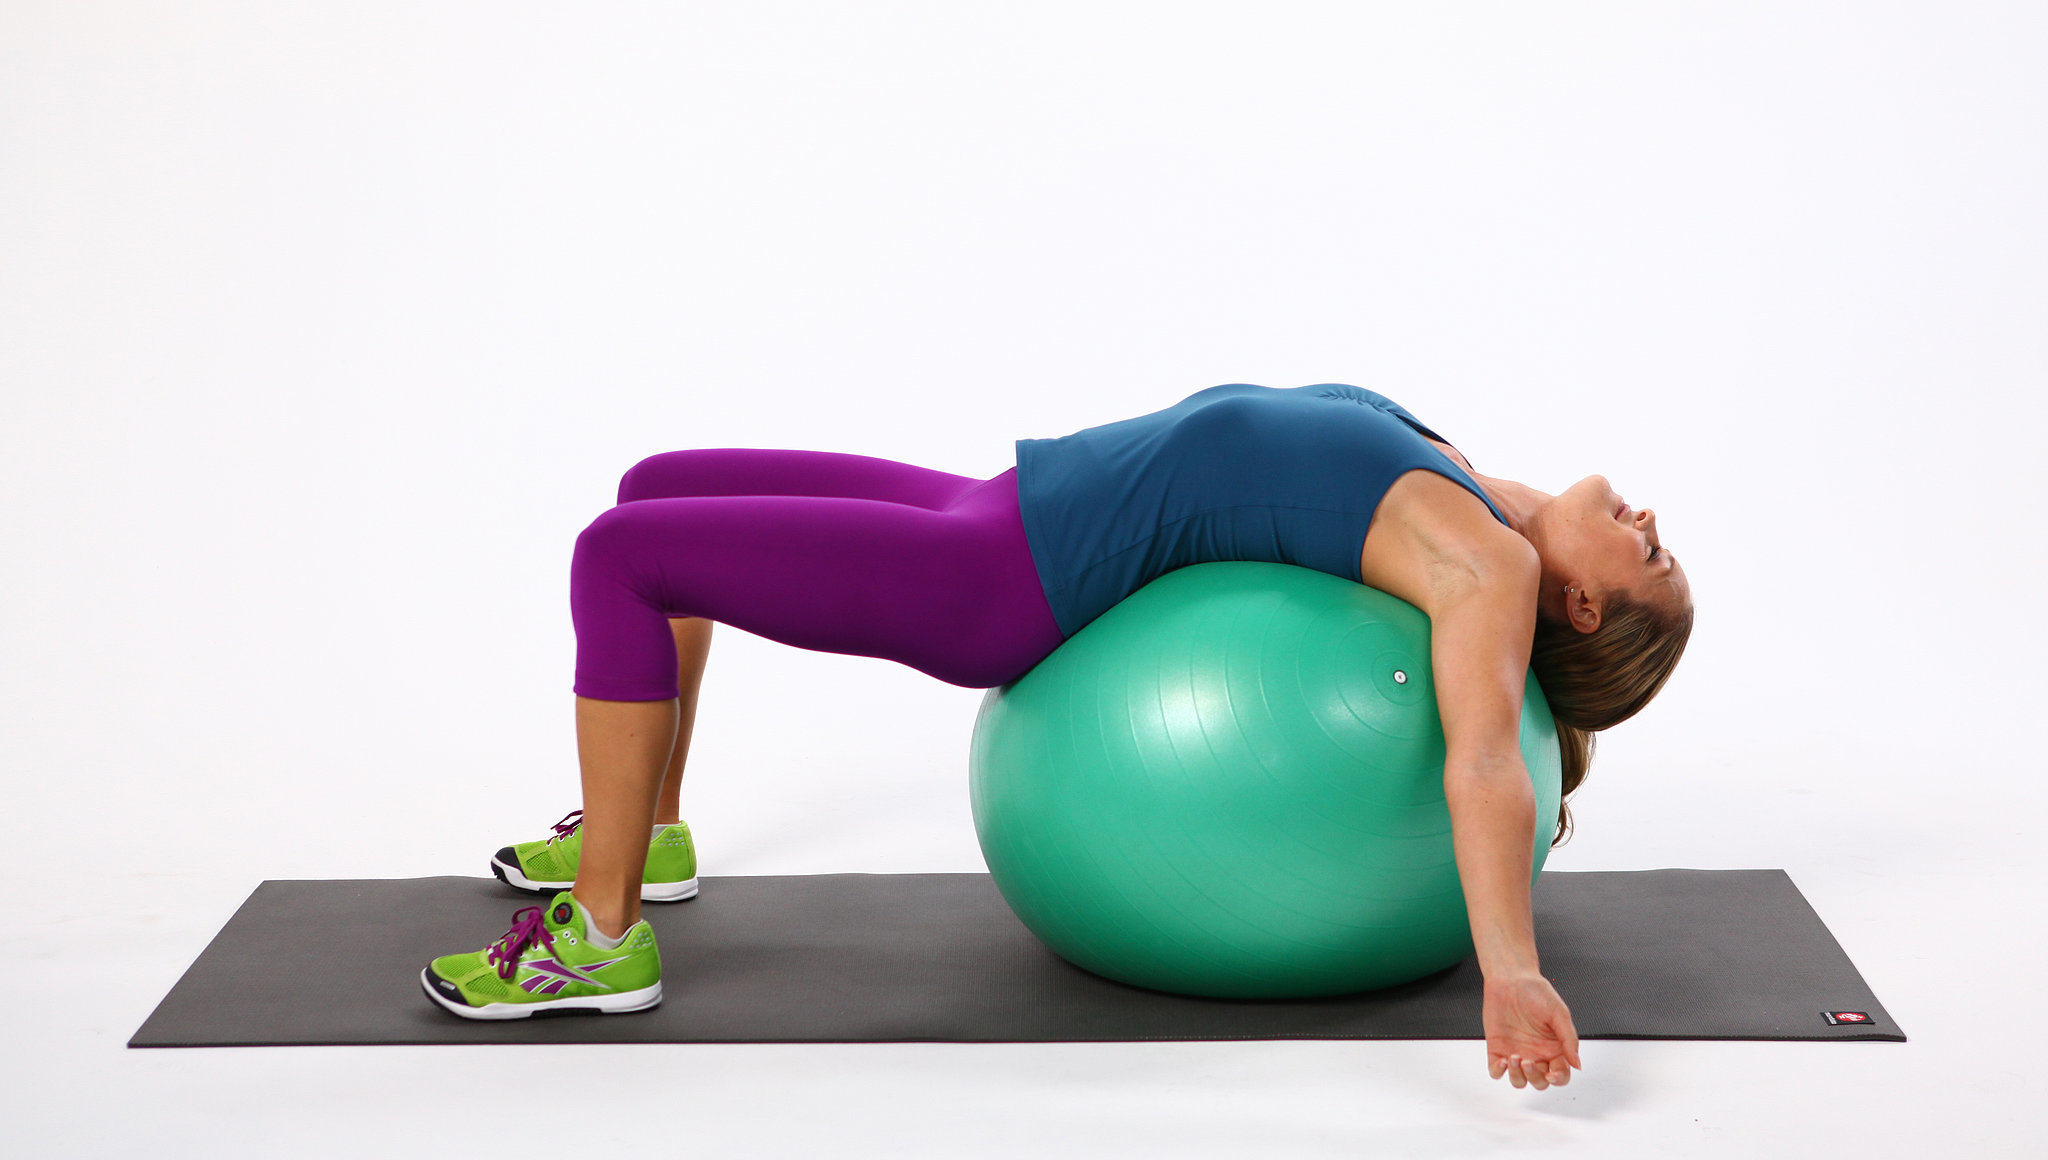 yoga ball chair exercises jazzy mobility parts what size exercise to buy for your height popsugar fitness strength training